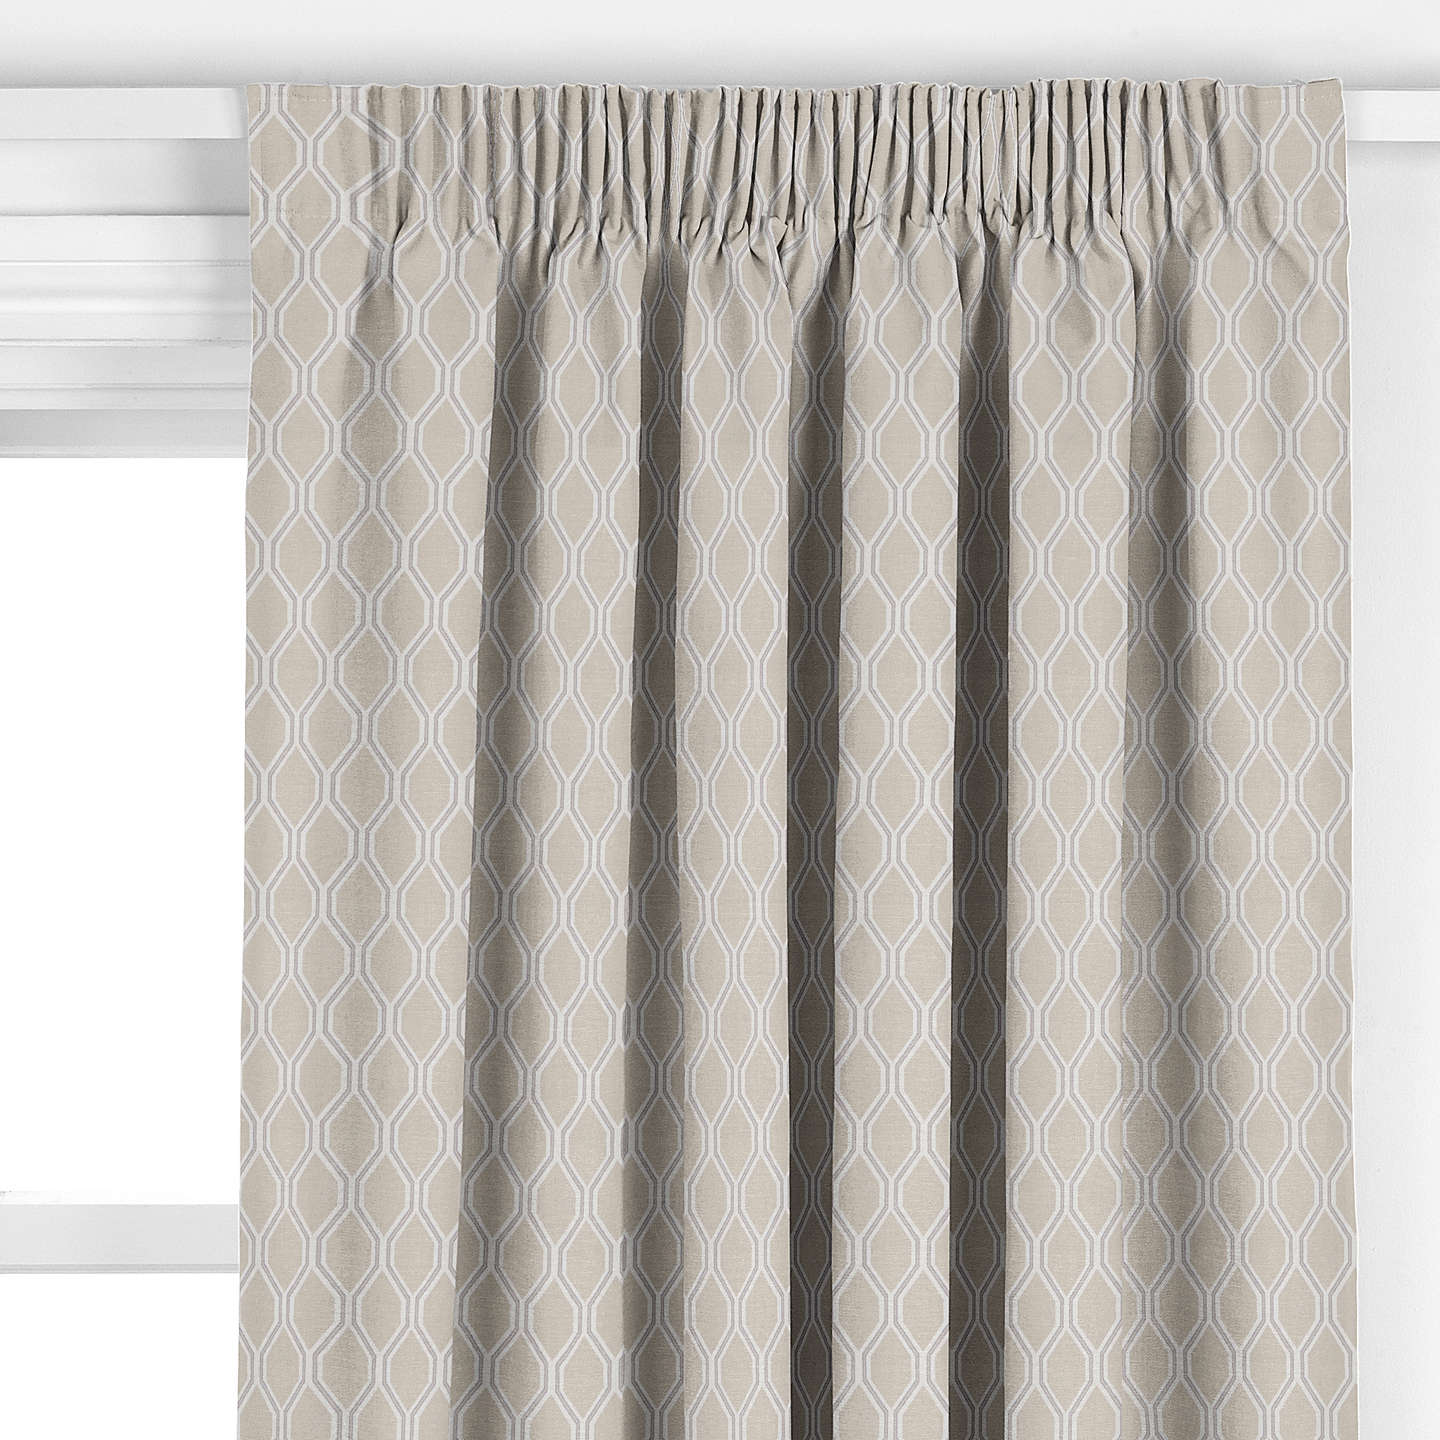 john lewis albany curtain putty at john lewis. Black Bedroom Furniture Sets. Home Design Ideas